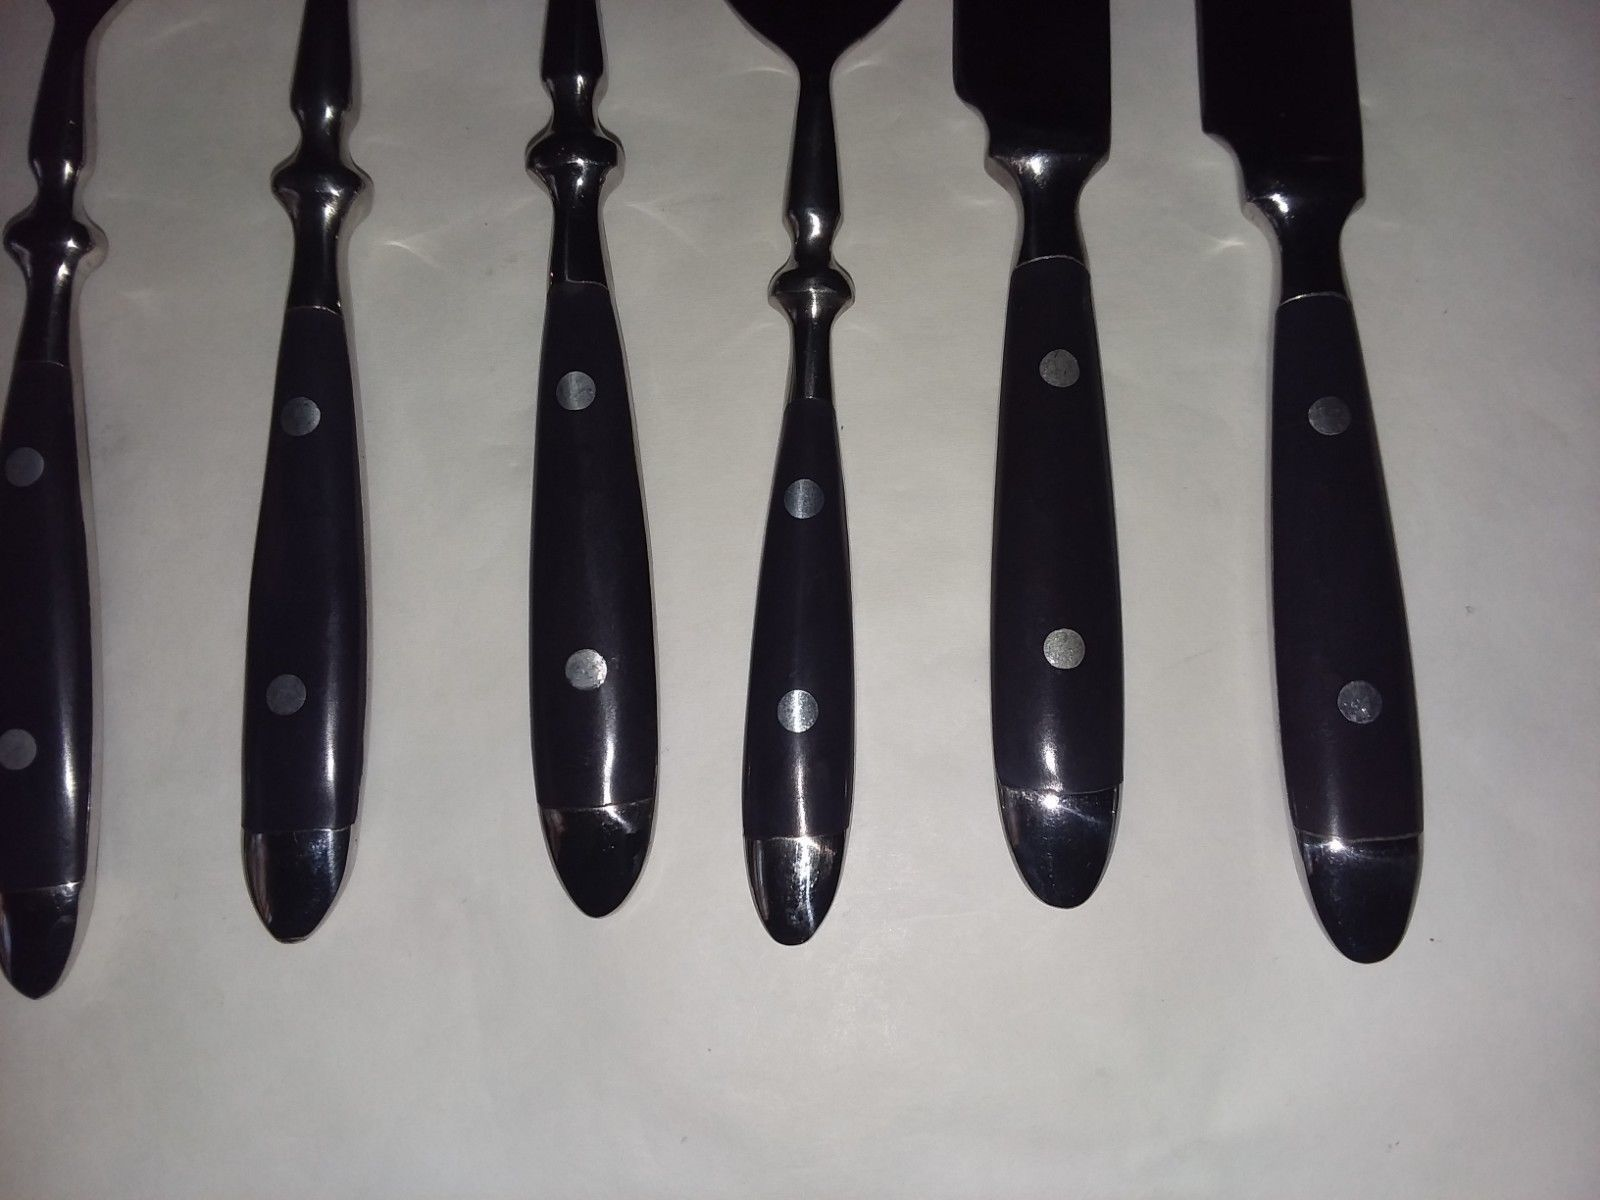 Set of 12 Deep Purple Resin Stainless Flatware Spoons Forks Knives Set